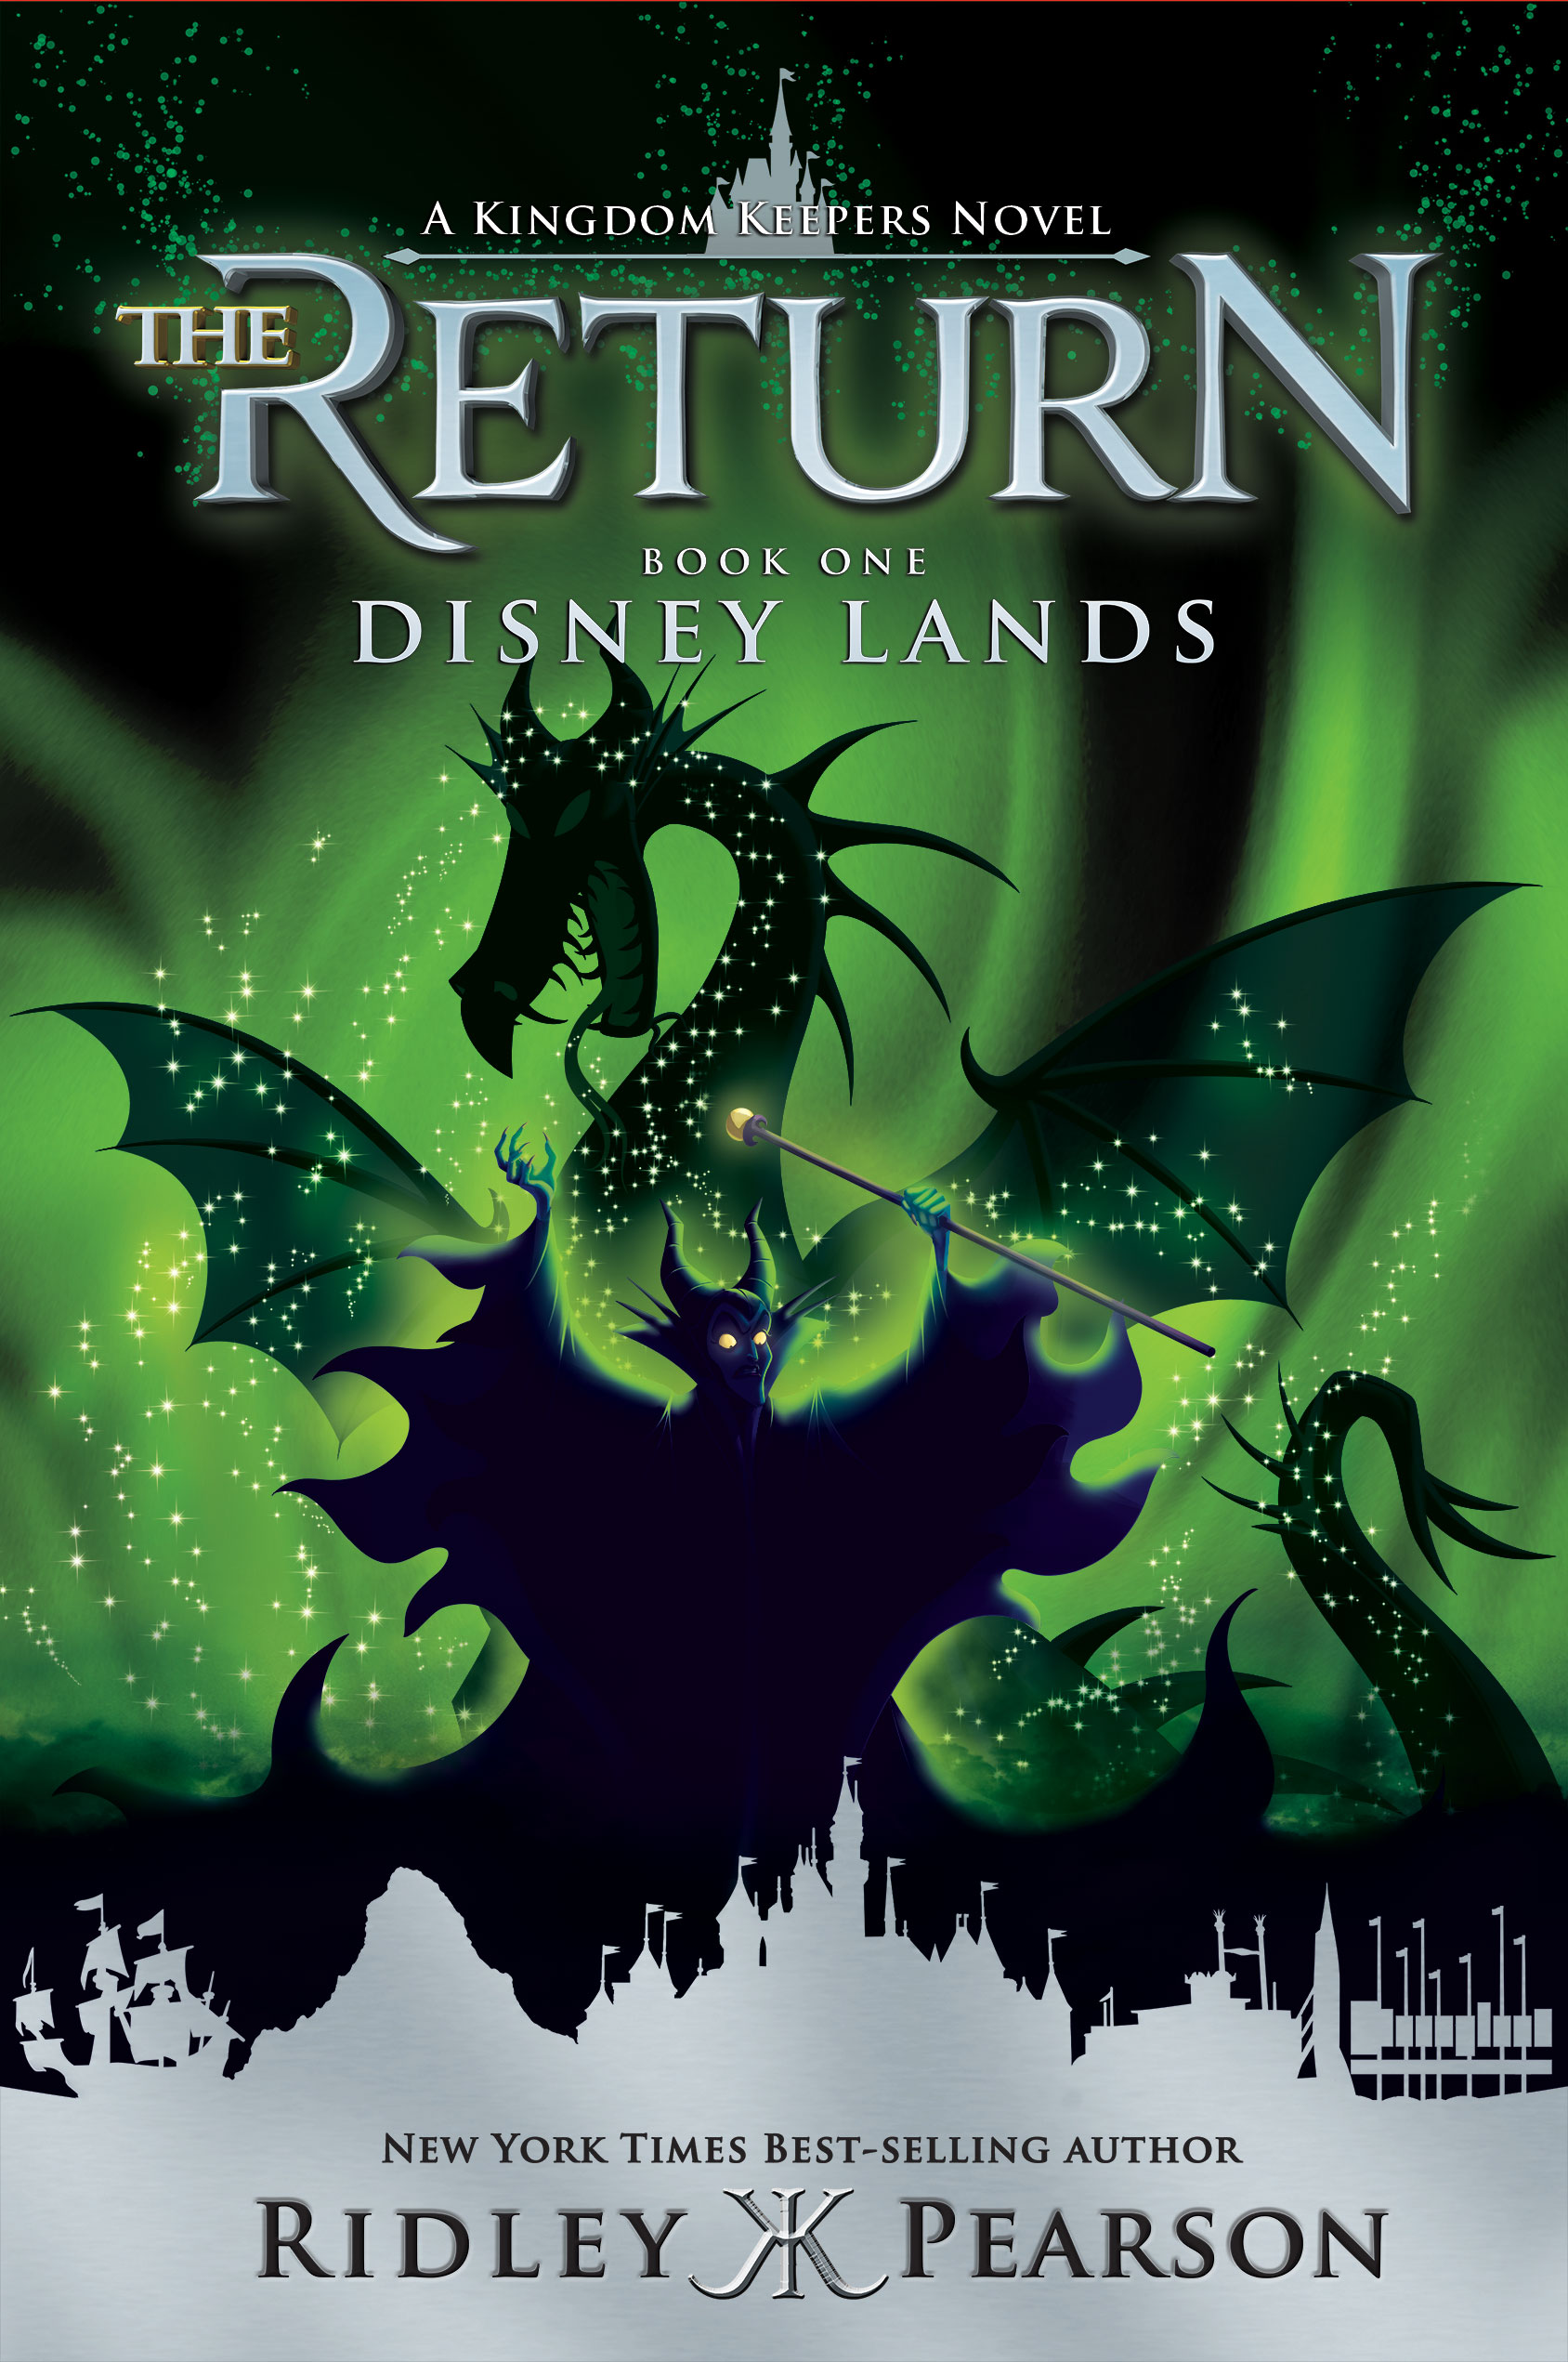 The Return: Disney Lands